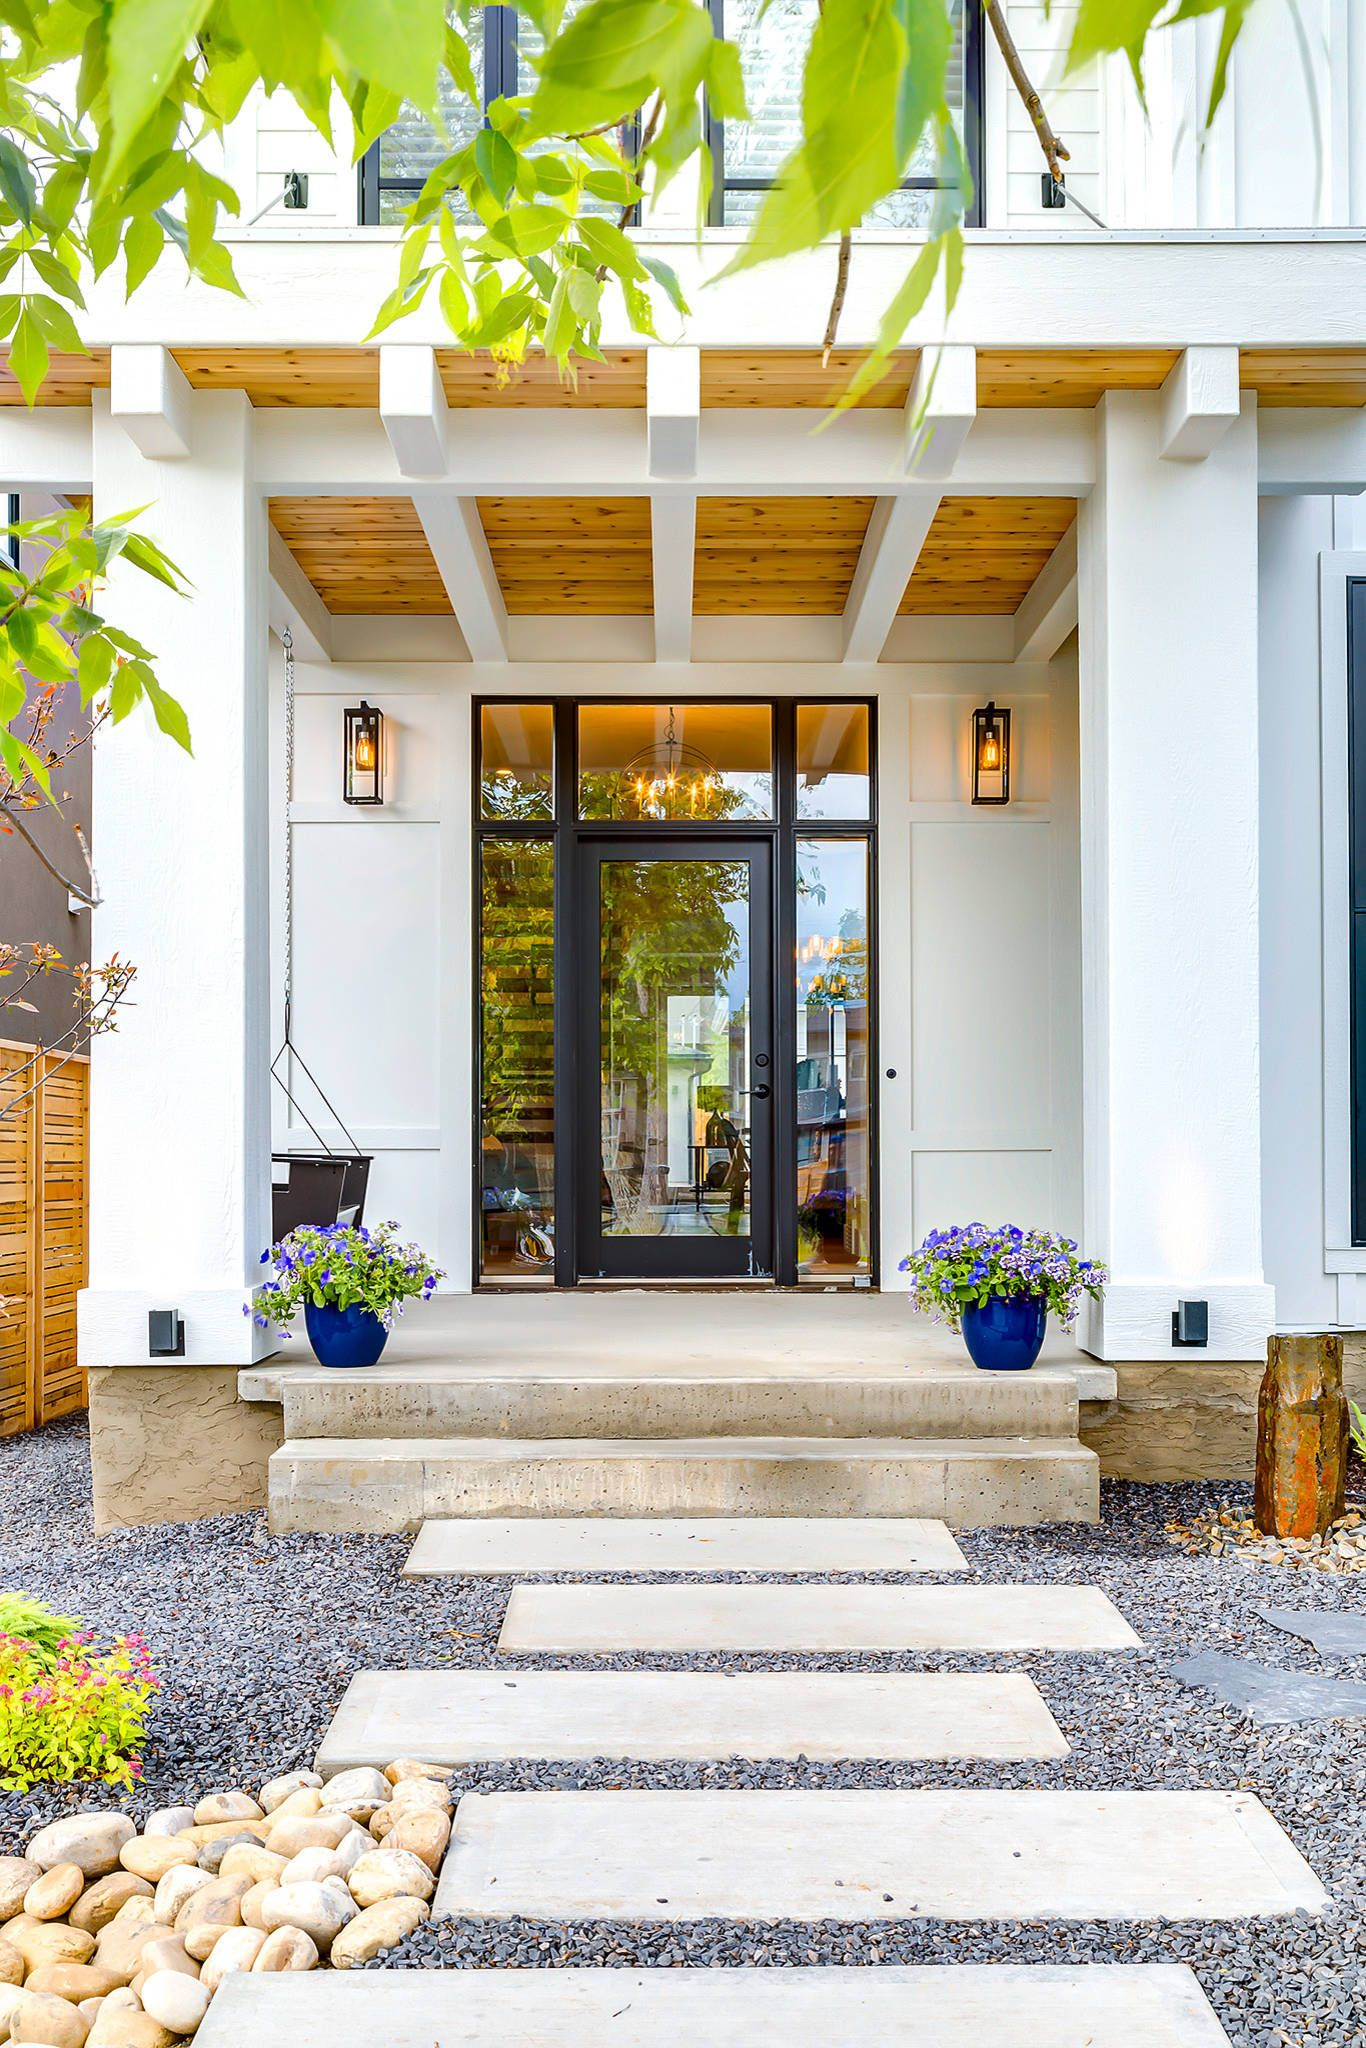 Modern farmhouse by trickle creek designer homes also bytrickle to live in rh pinterest